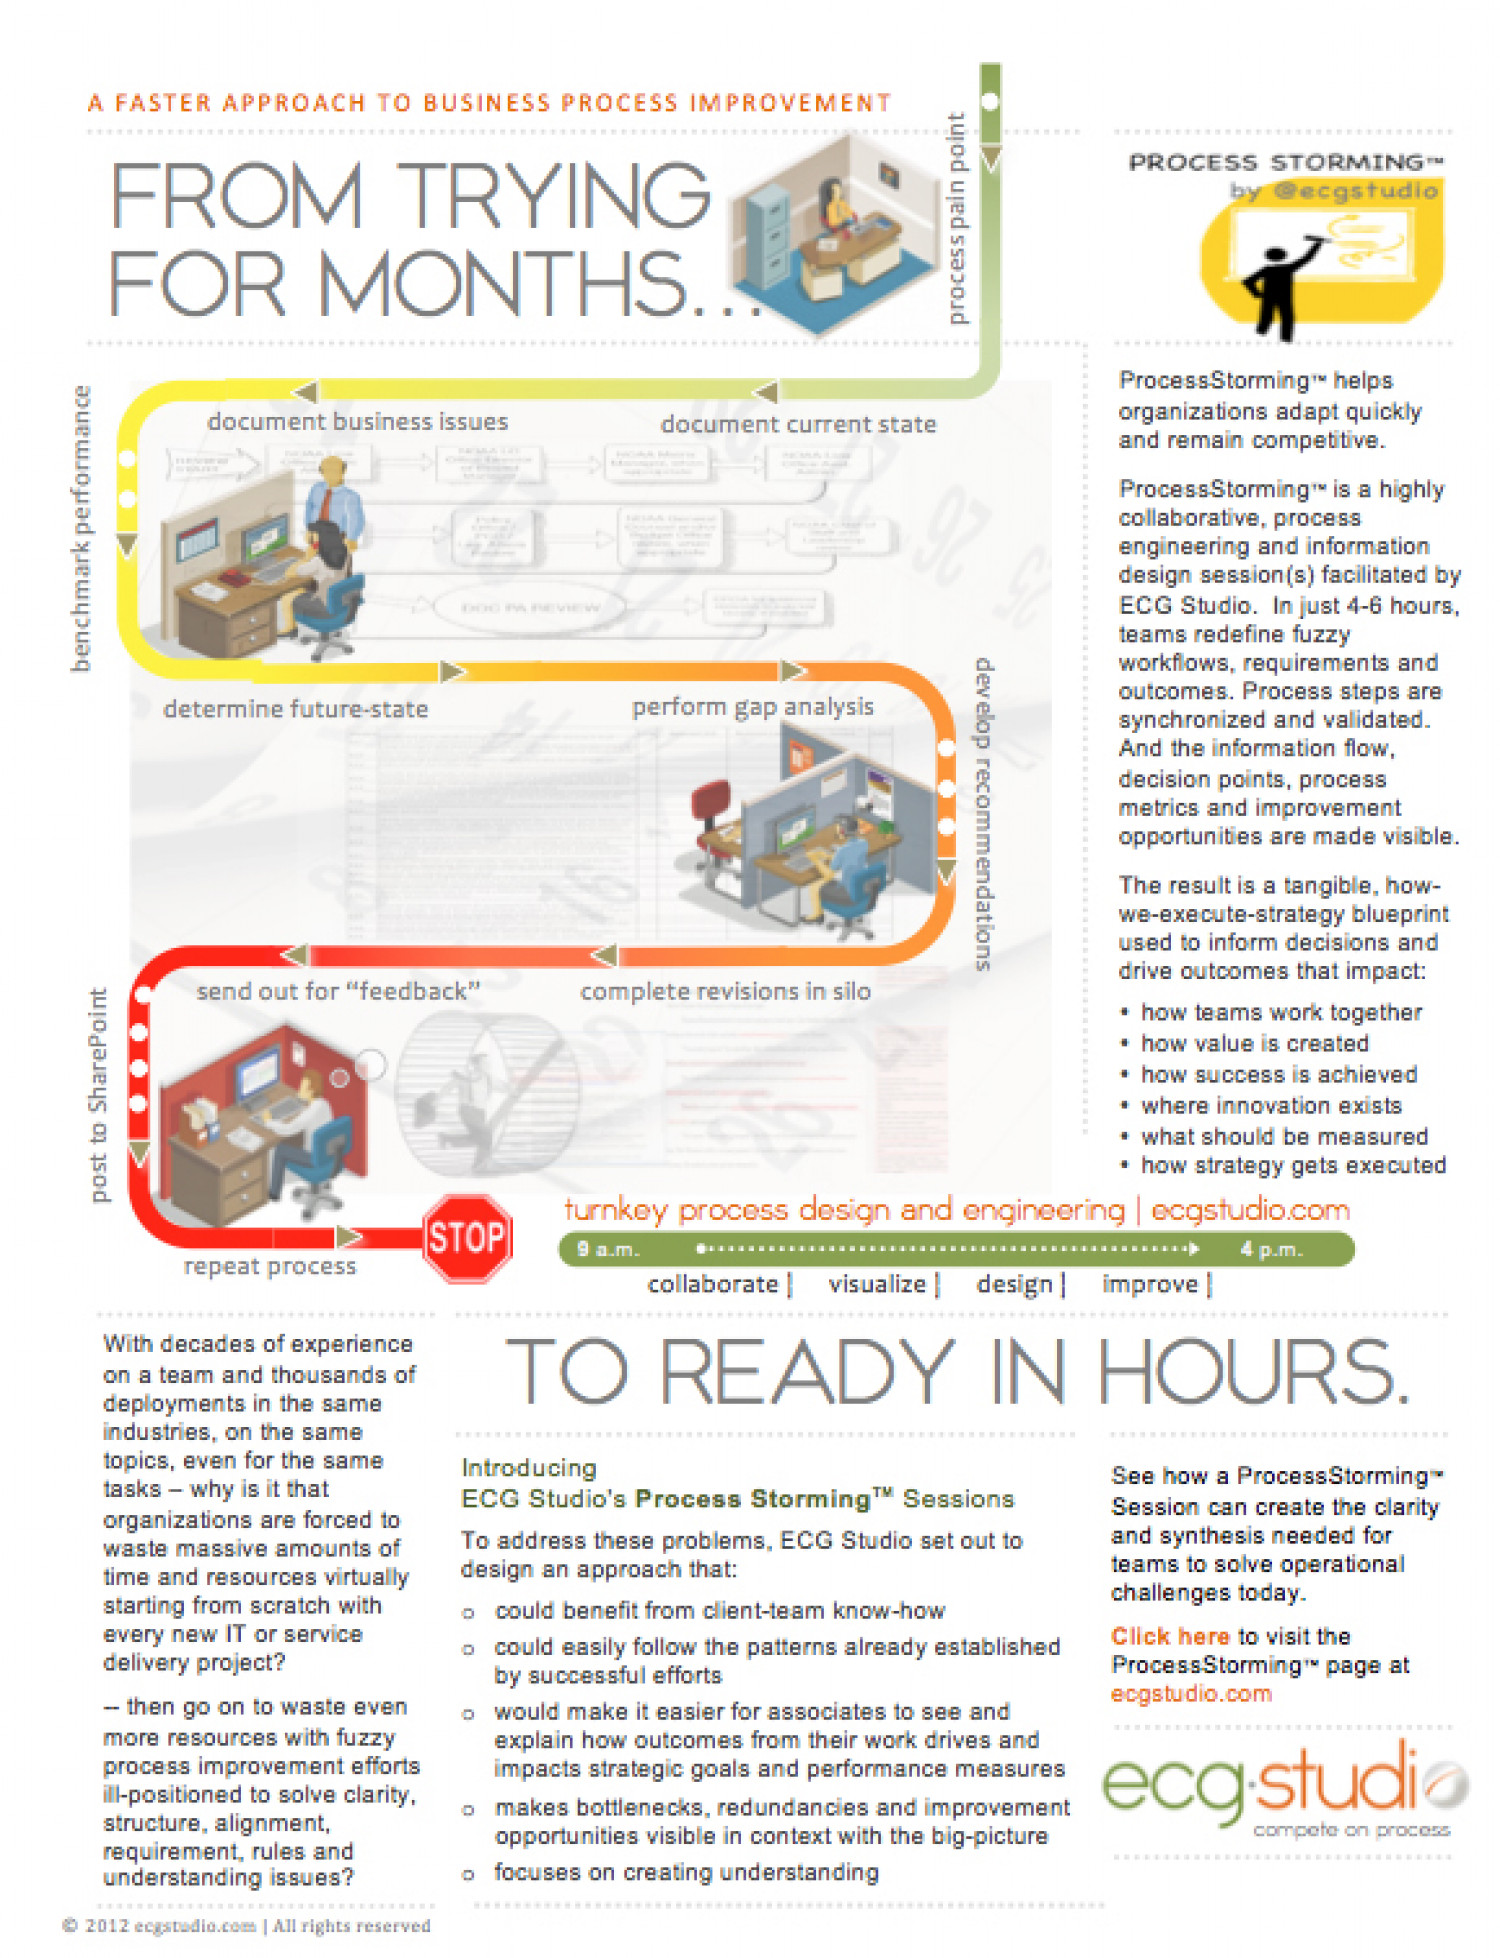 a faster approach to business process improvement by @ecgstudio Infographic